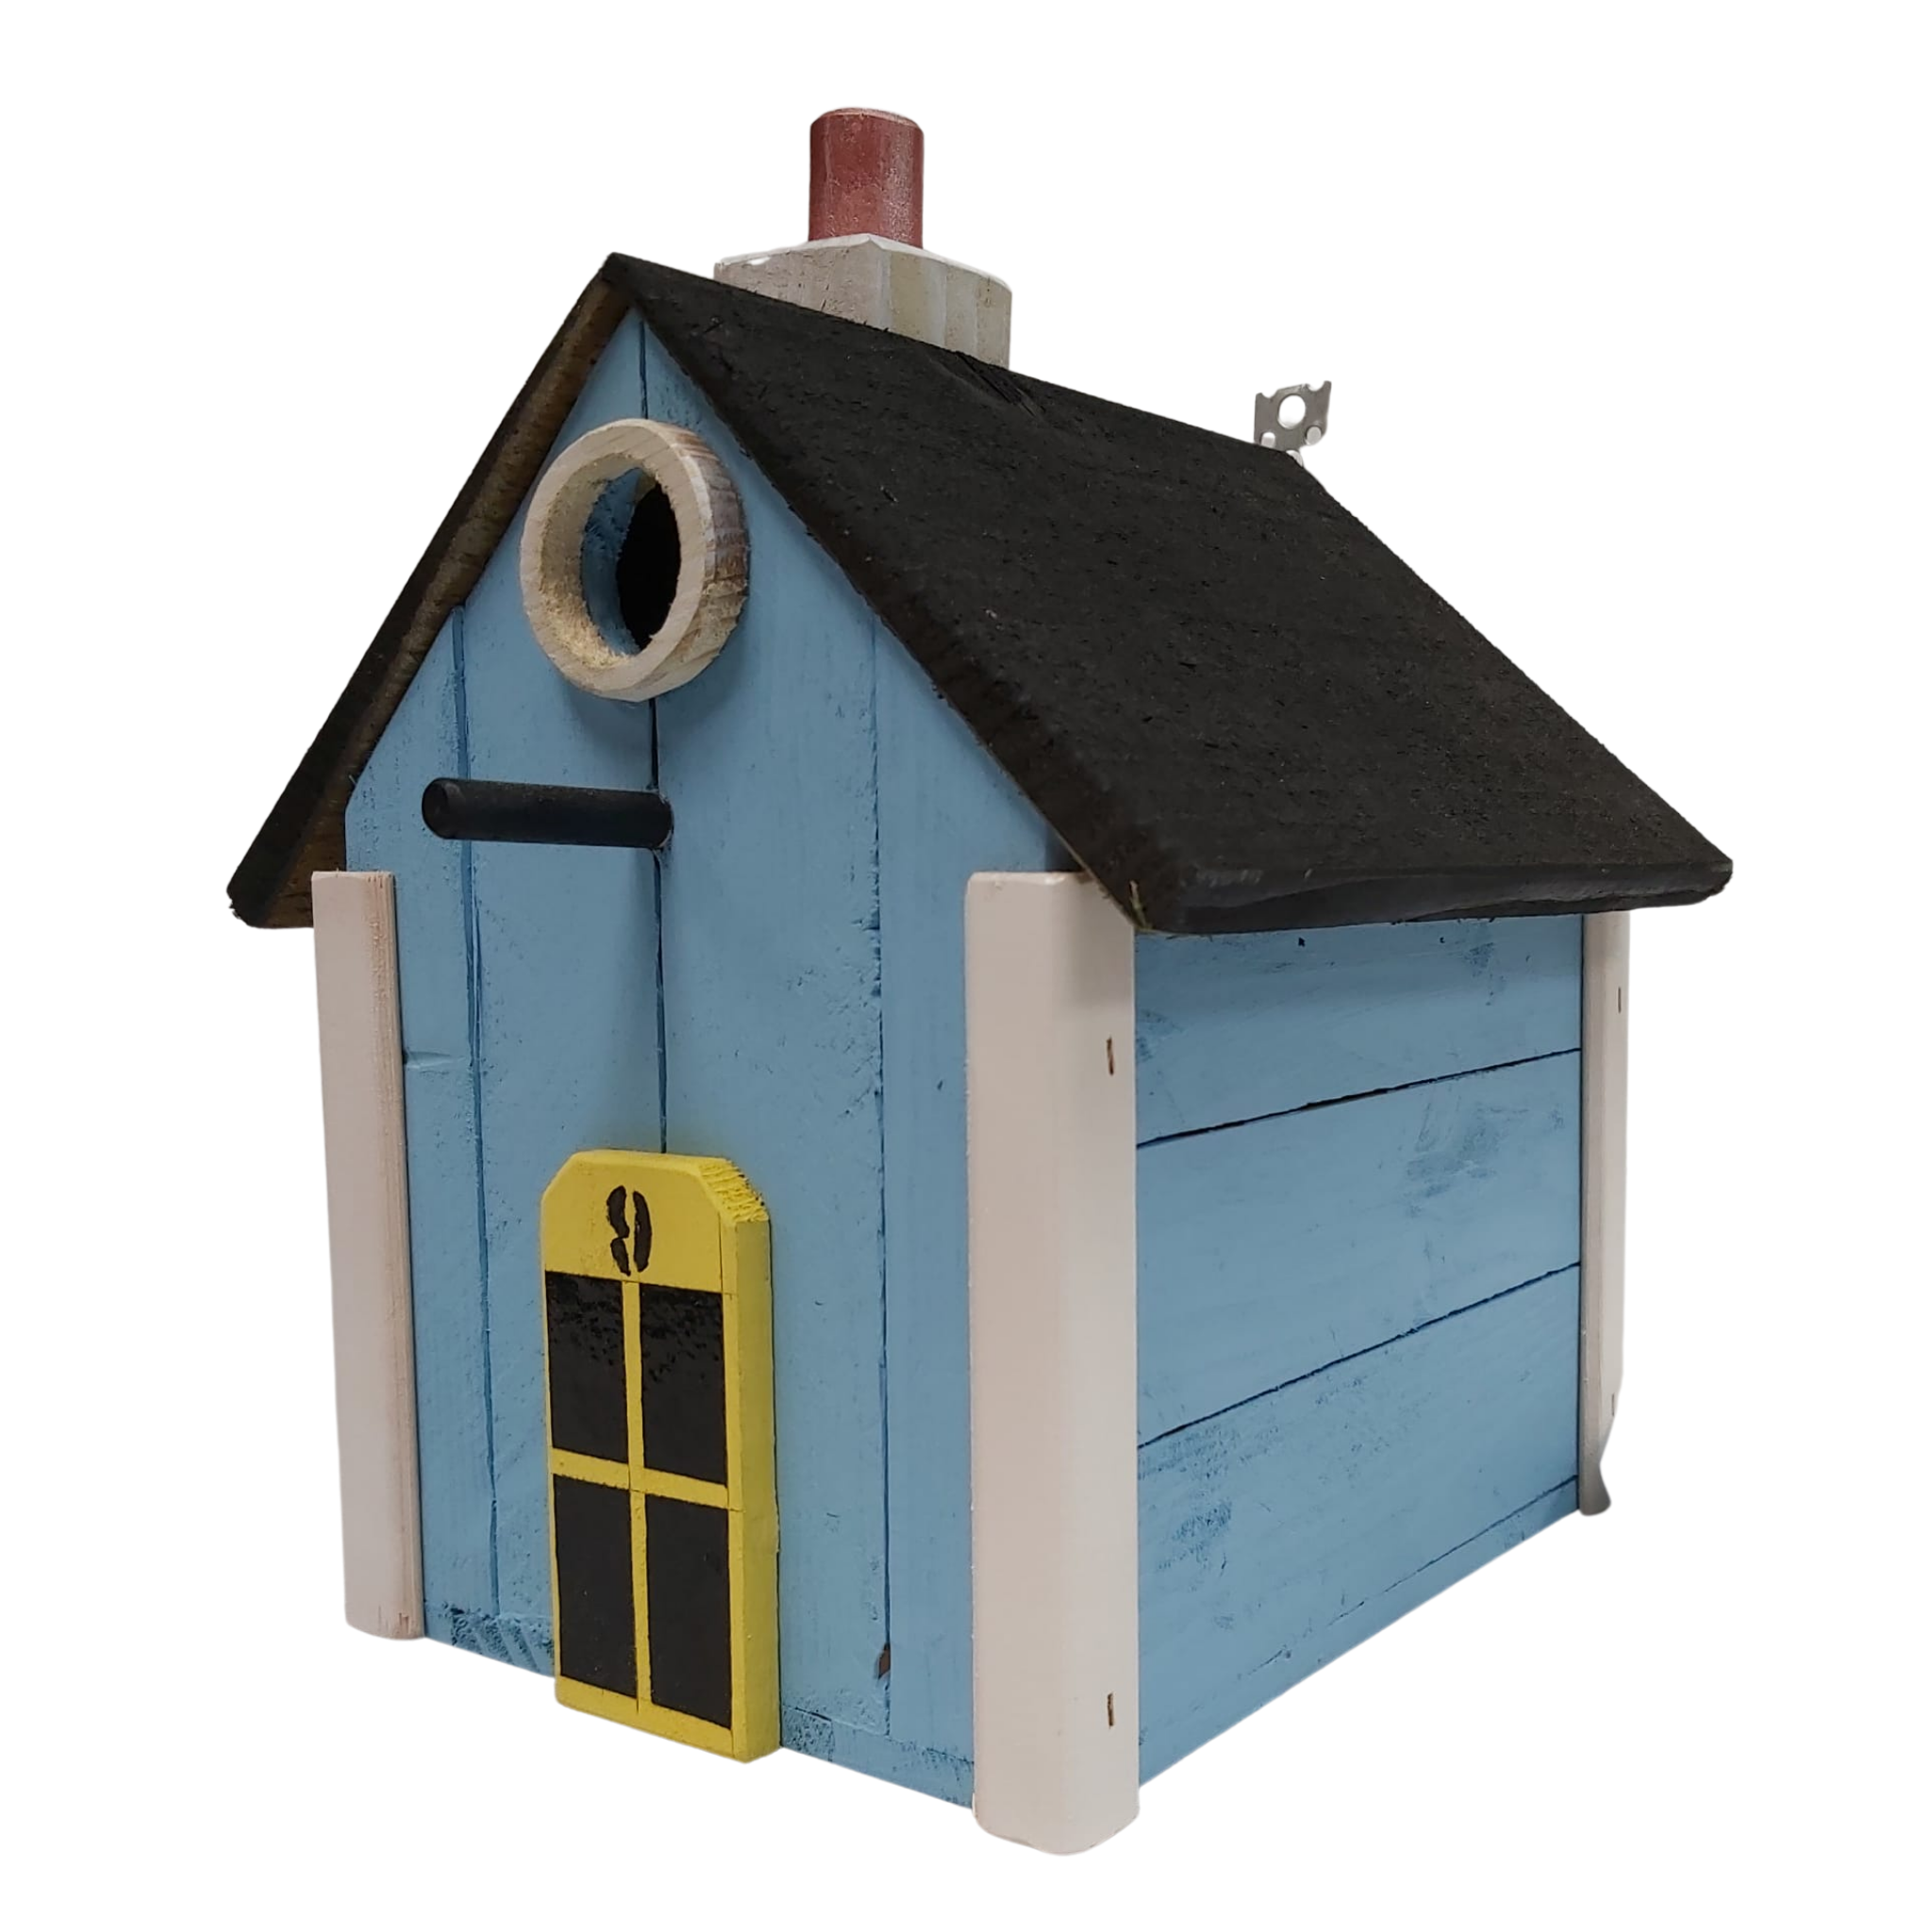 Handmade Bird Nesting House Box- Light Blue, Bird Cages & Stands by Dog In A Box